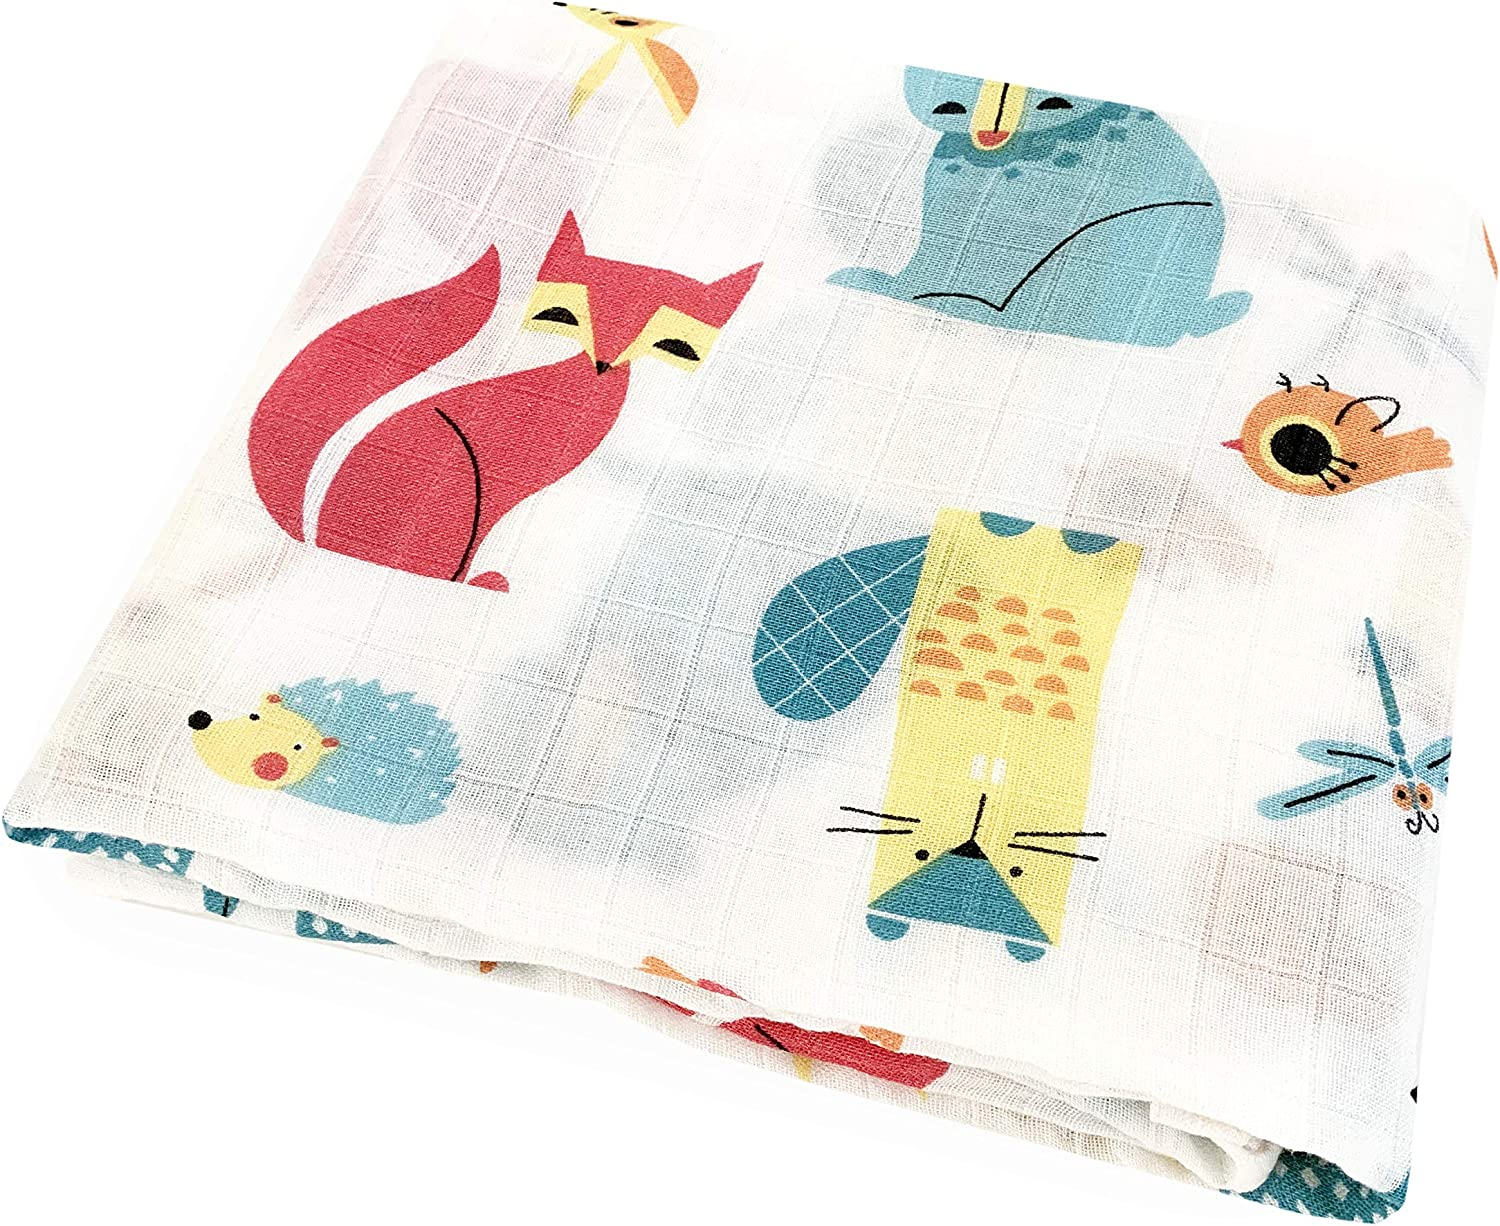 Bio Muslin Swaddle Blanket Large Muslin Burp Cloth Super Soft and Breathable Baby Wrap ORGANIC Cotton Eco-Friendly and Hypoallergenic Receiving Blanket Nursing Cover MiniSteps Muslin Blanket Baby Sho Bamboo Swaddle Blanket Baby Shower Gift